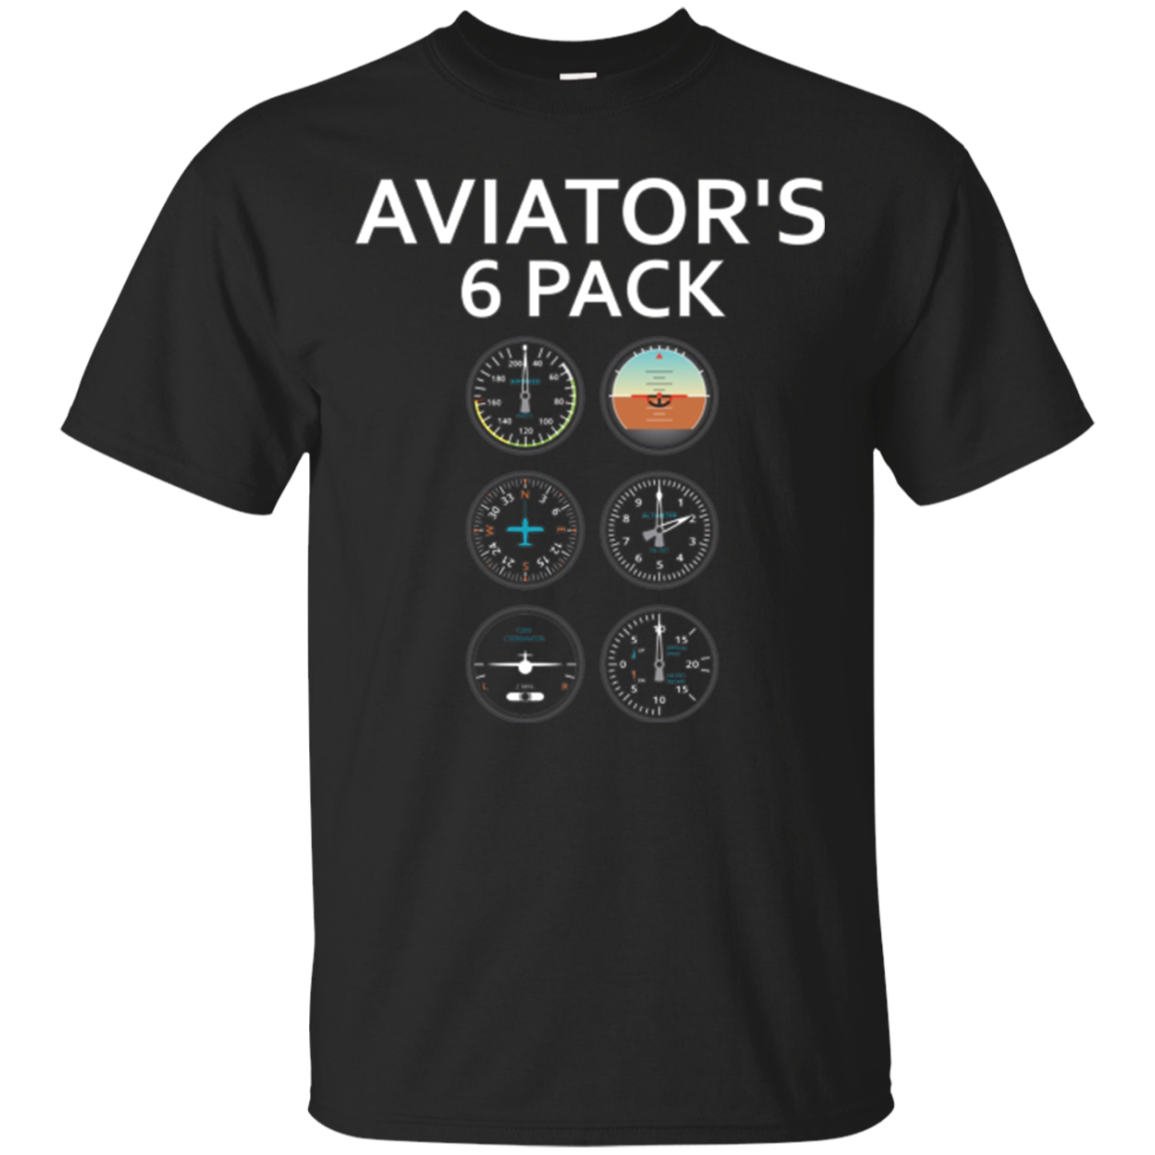 Aviator 6 Pack T-Shirt: Pilot Novelty Humor